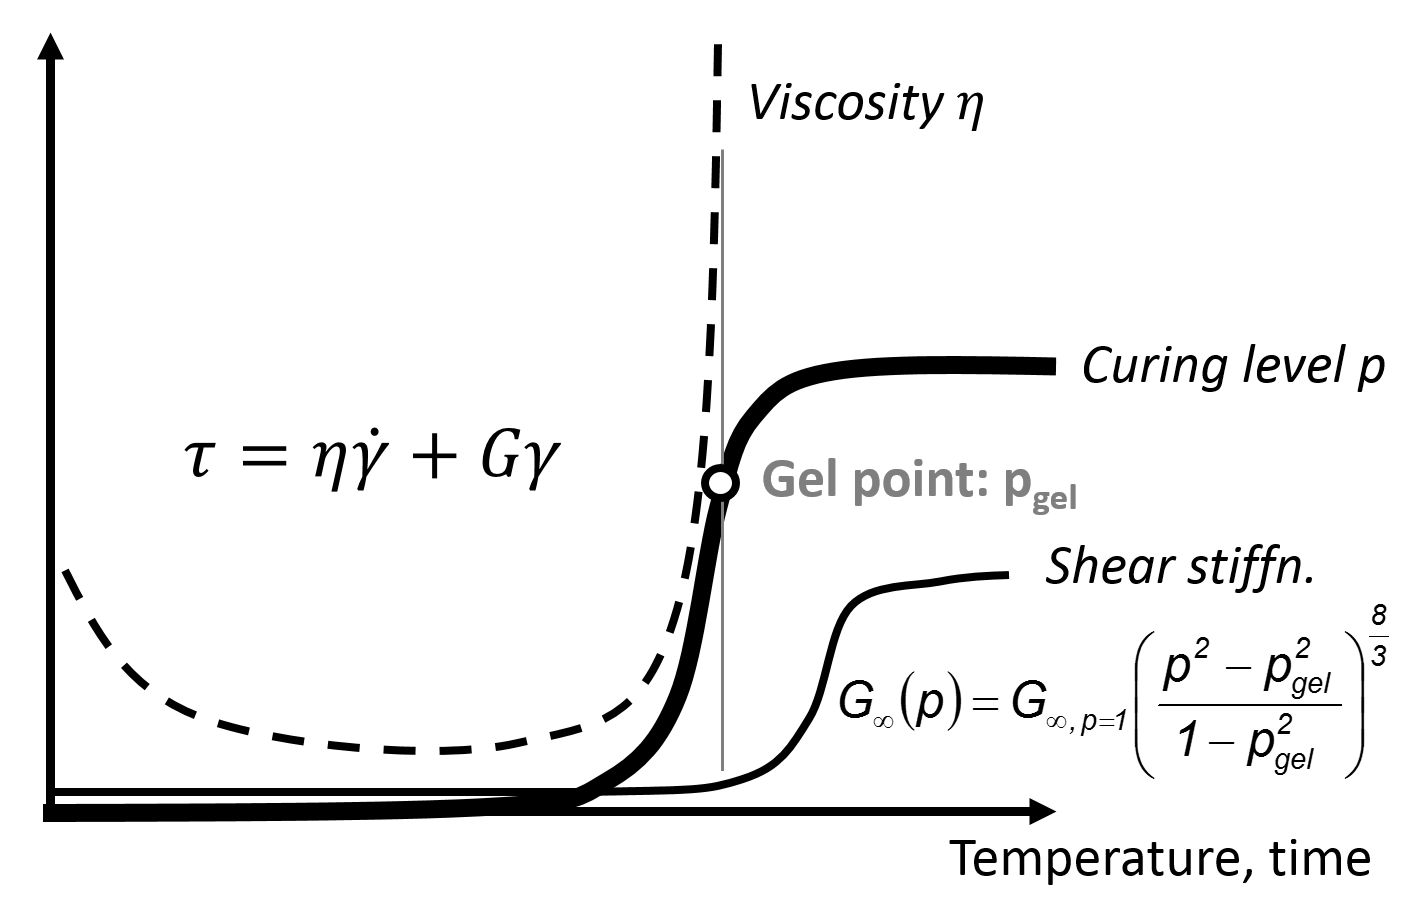 Diagram showing some Viscoelastic Material Properties like Viscosity, Gel Point and Shear Stiffness depending on Temperaure and Time